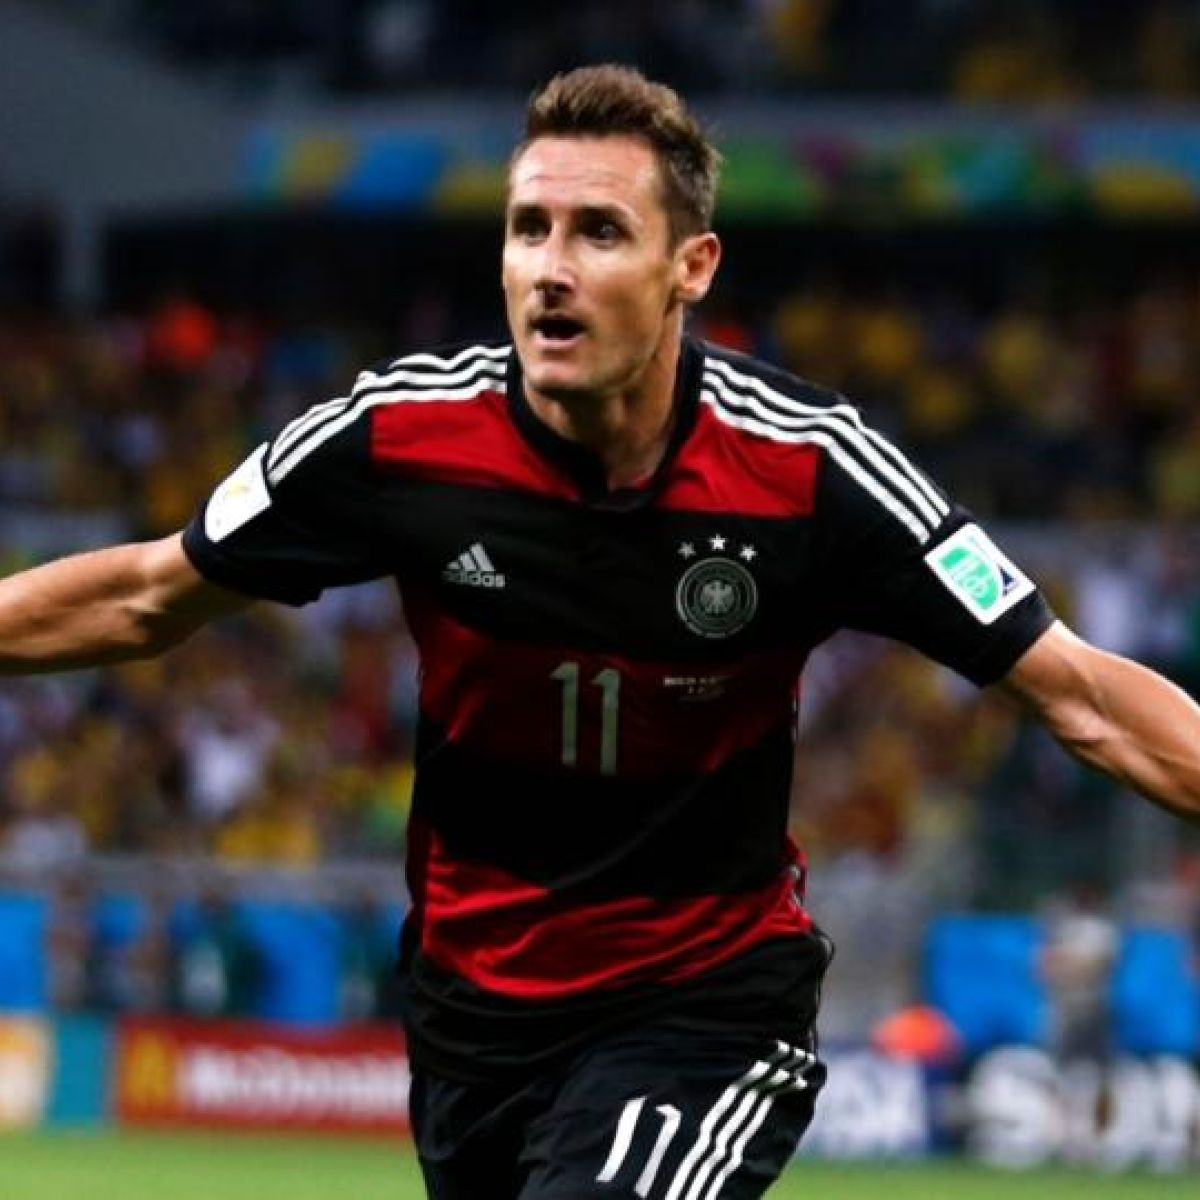 Miroslav Klose: biography and career of a football player 21